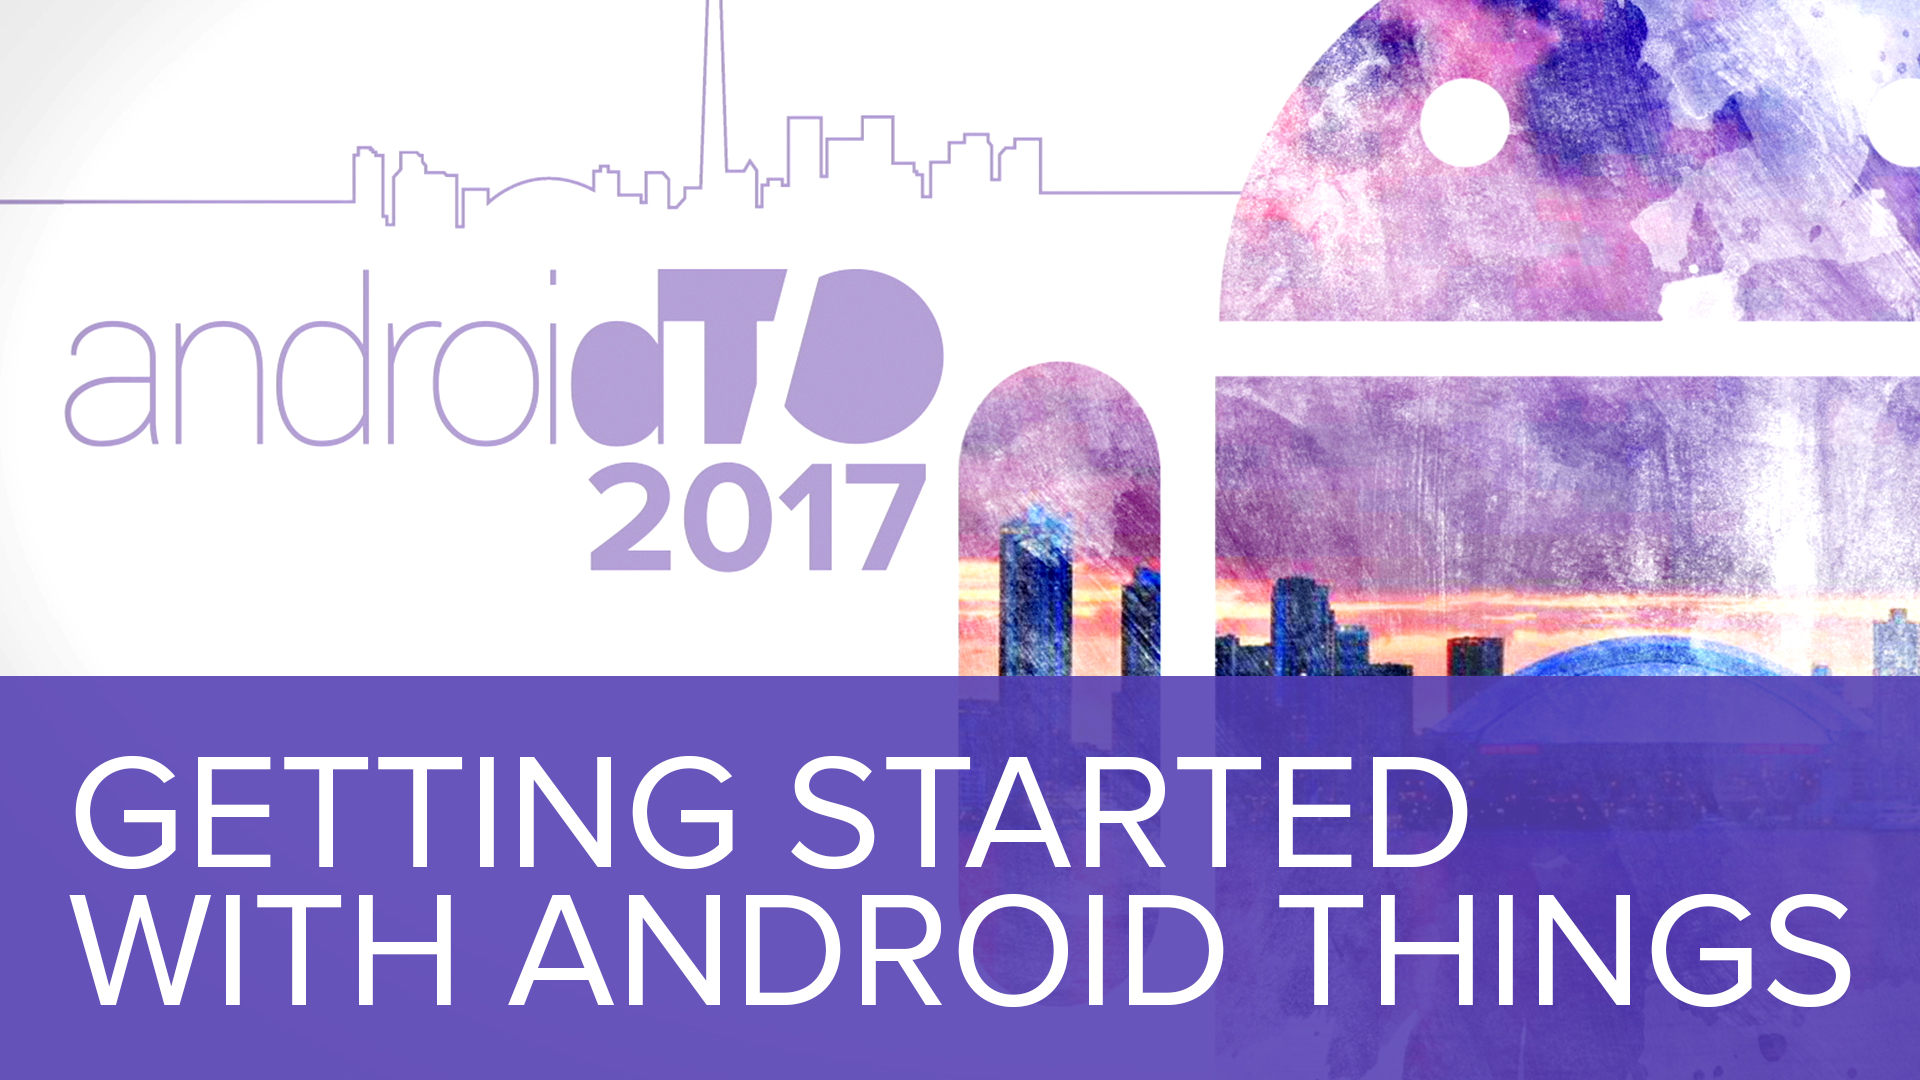 Getting Started with Android Things - Bharati Sethiya & Troy Molnar